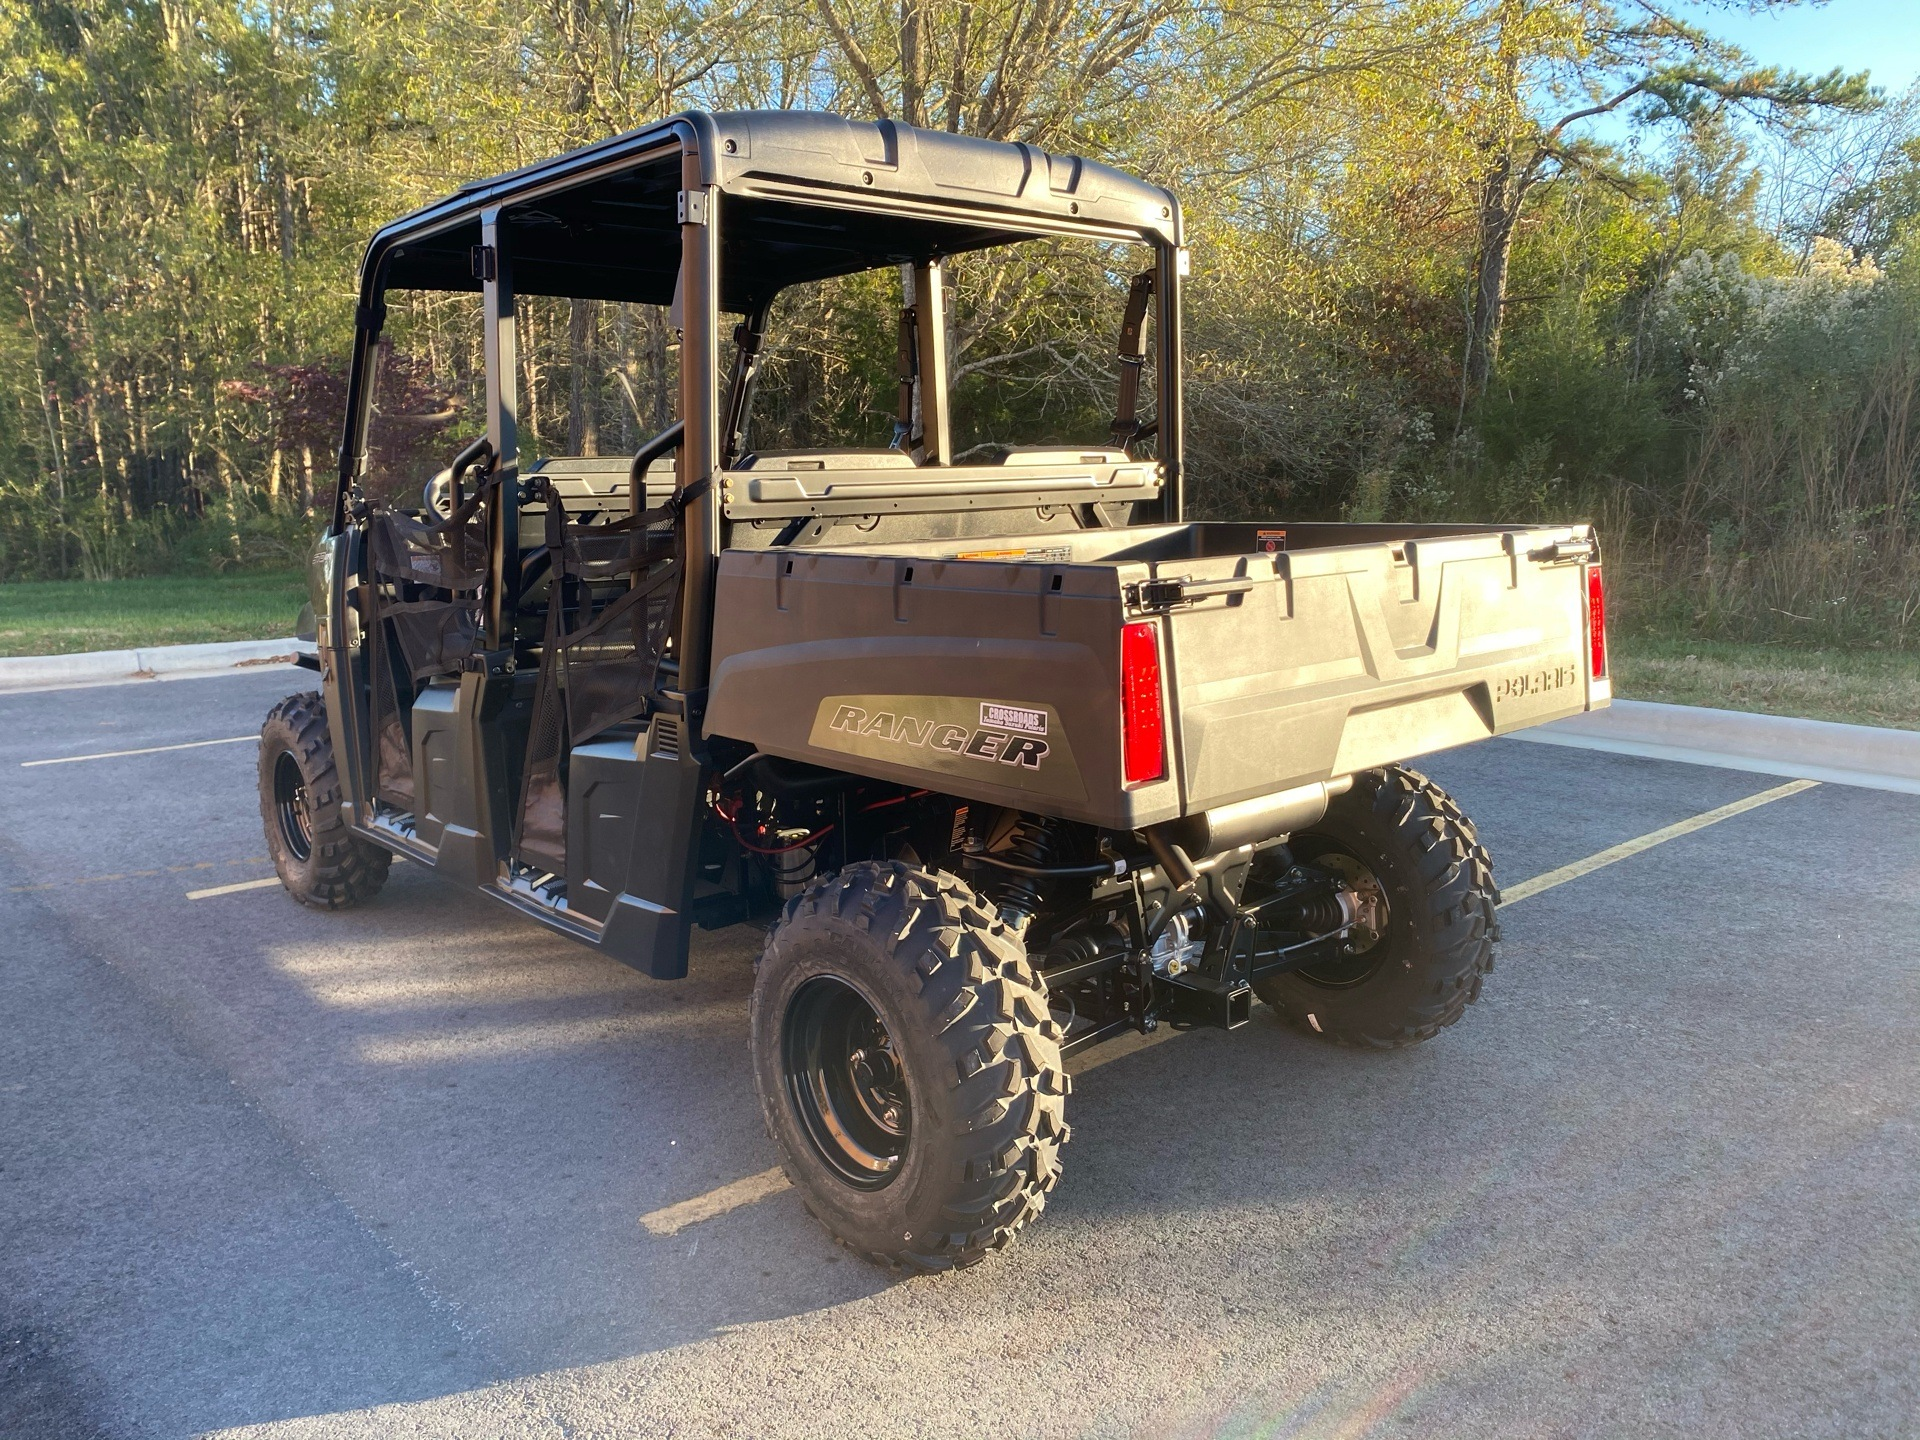 2021 Polaris Ranger Crew 570 in Albemarle, North Carolina - Photo 3